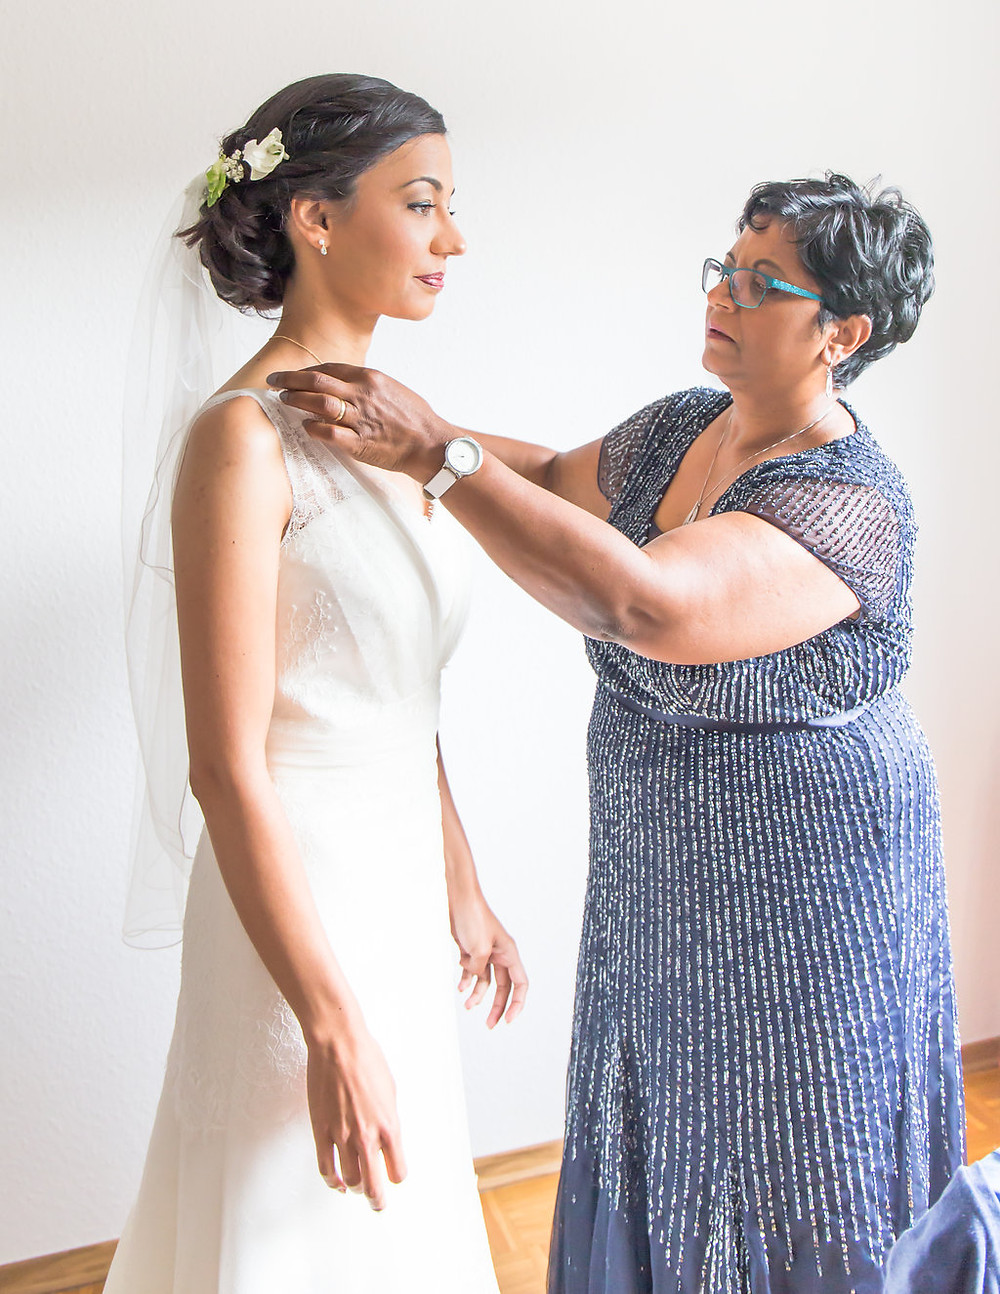 Mother of the Bride with one last check before they leave for the wedding.